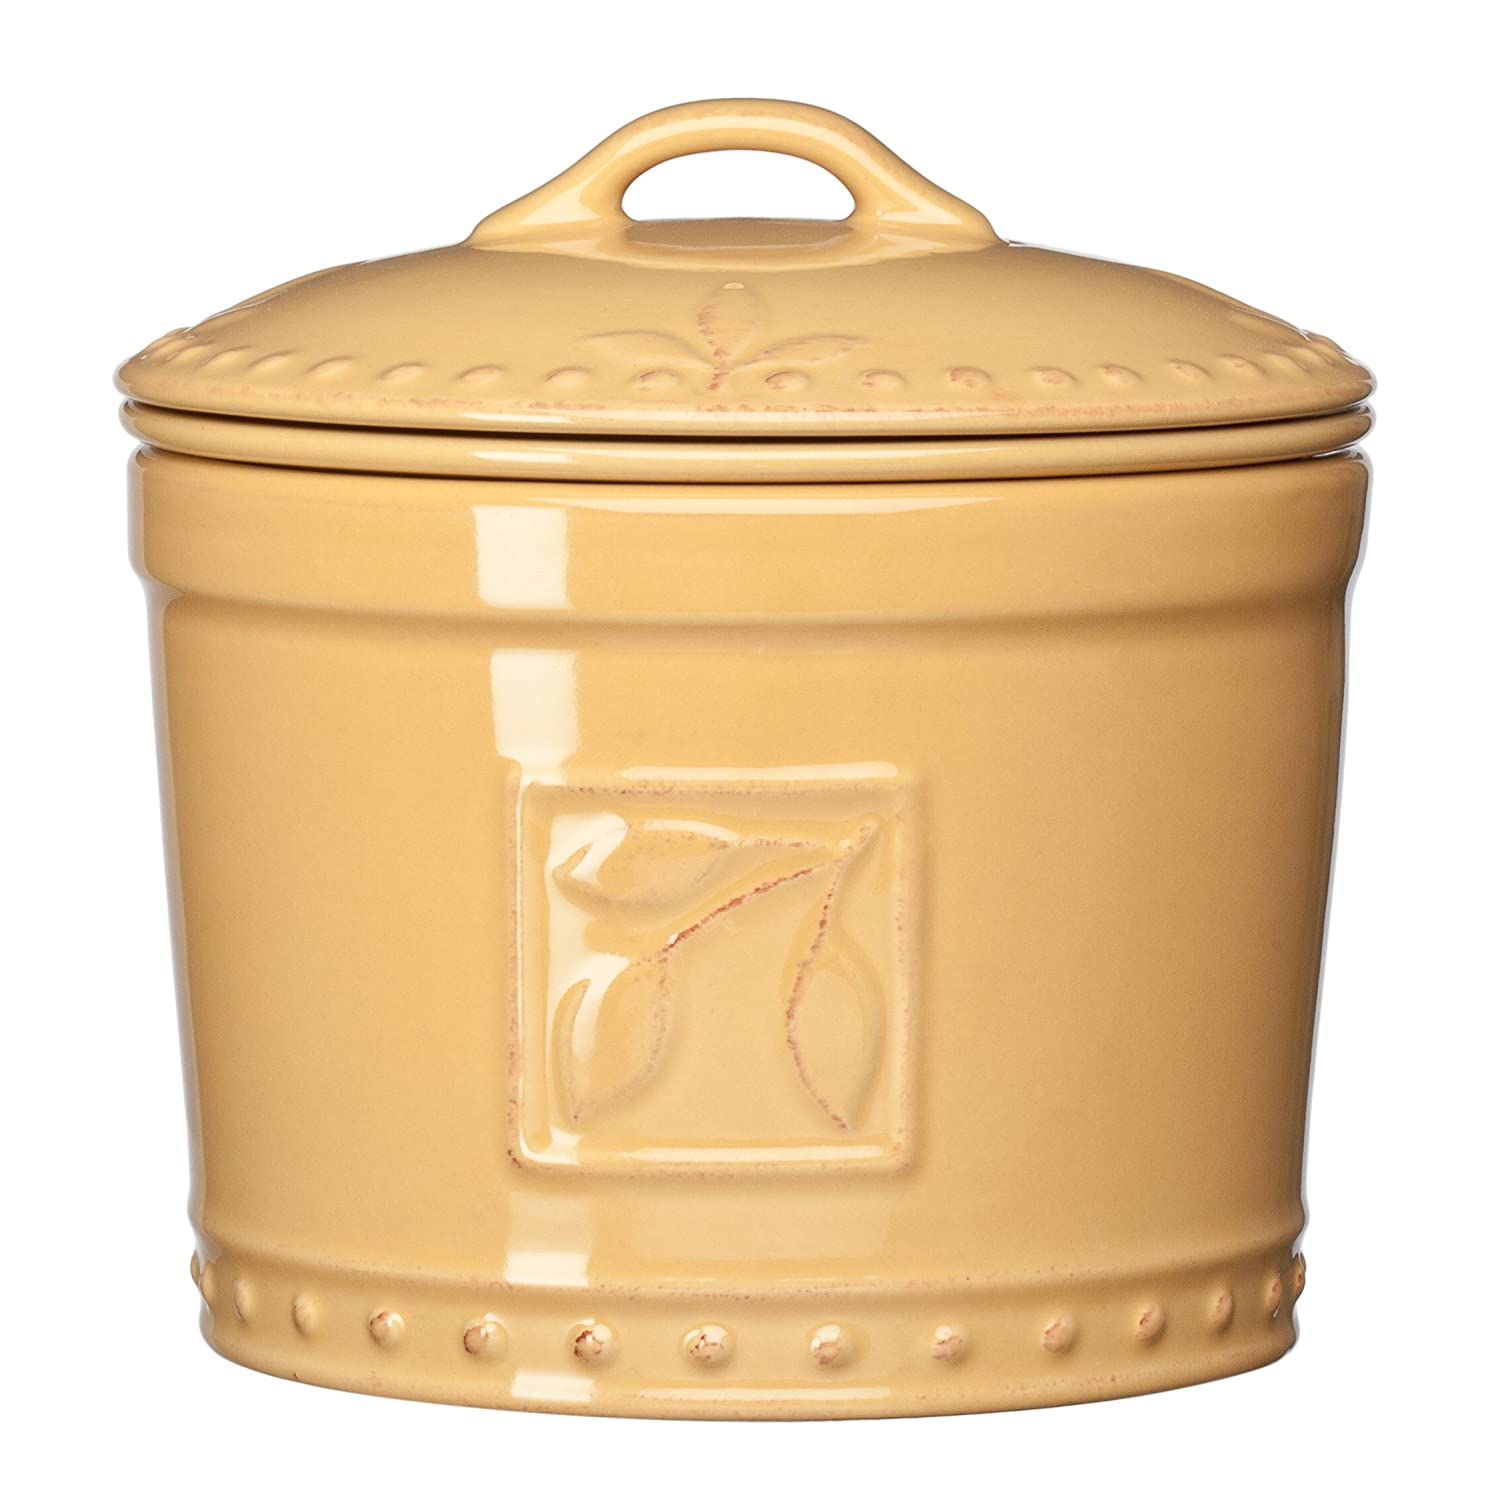 Signature Housewares Sorrento Collection Stoneware Dip Chiller, Gold Antiqued Finish 71019